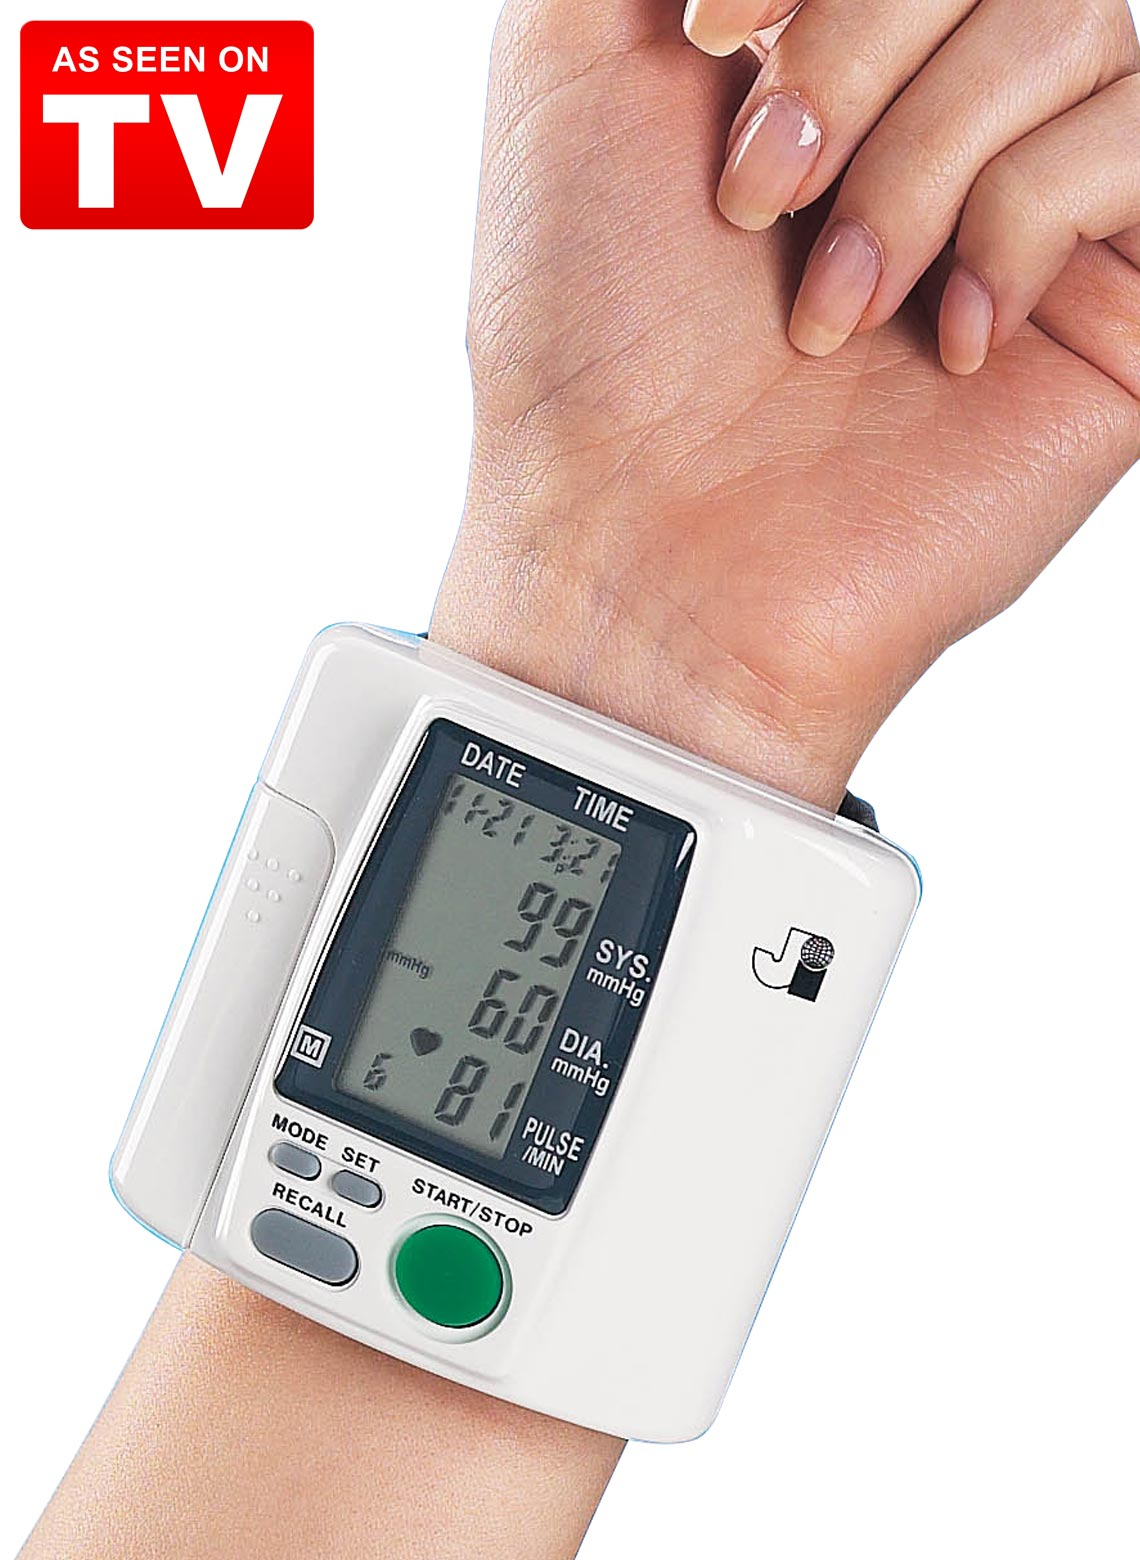 wristech blood pressure monitor as seen on tv loading zoom